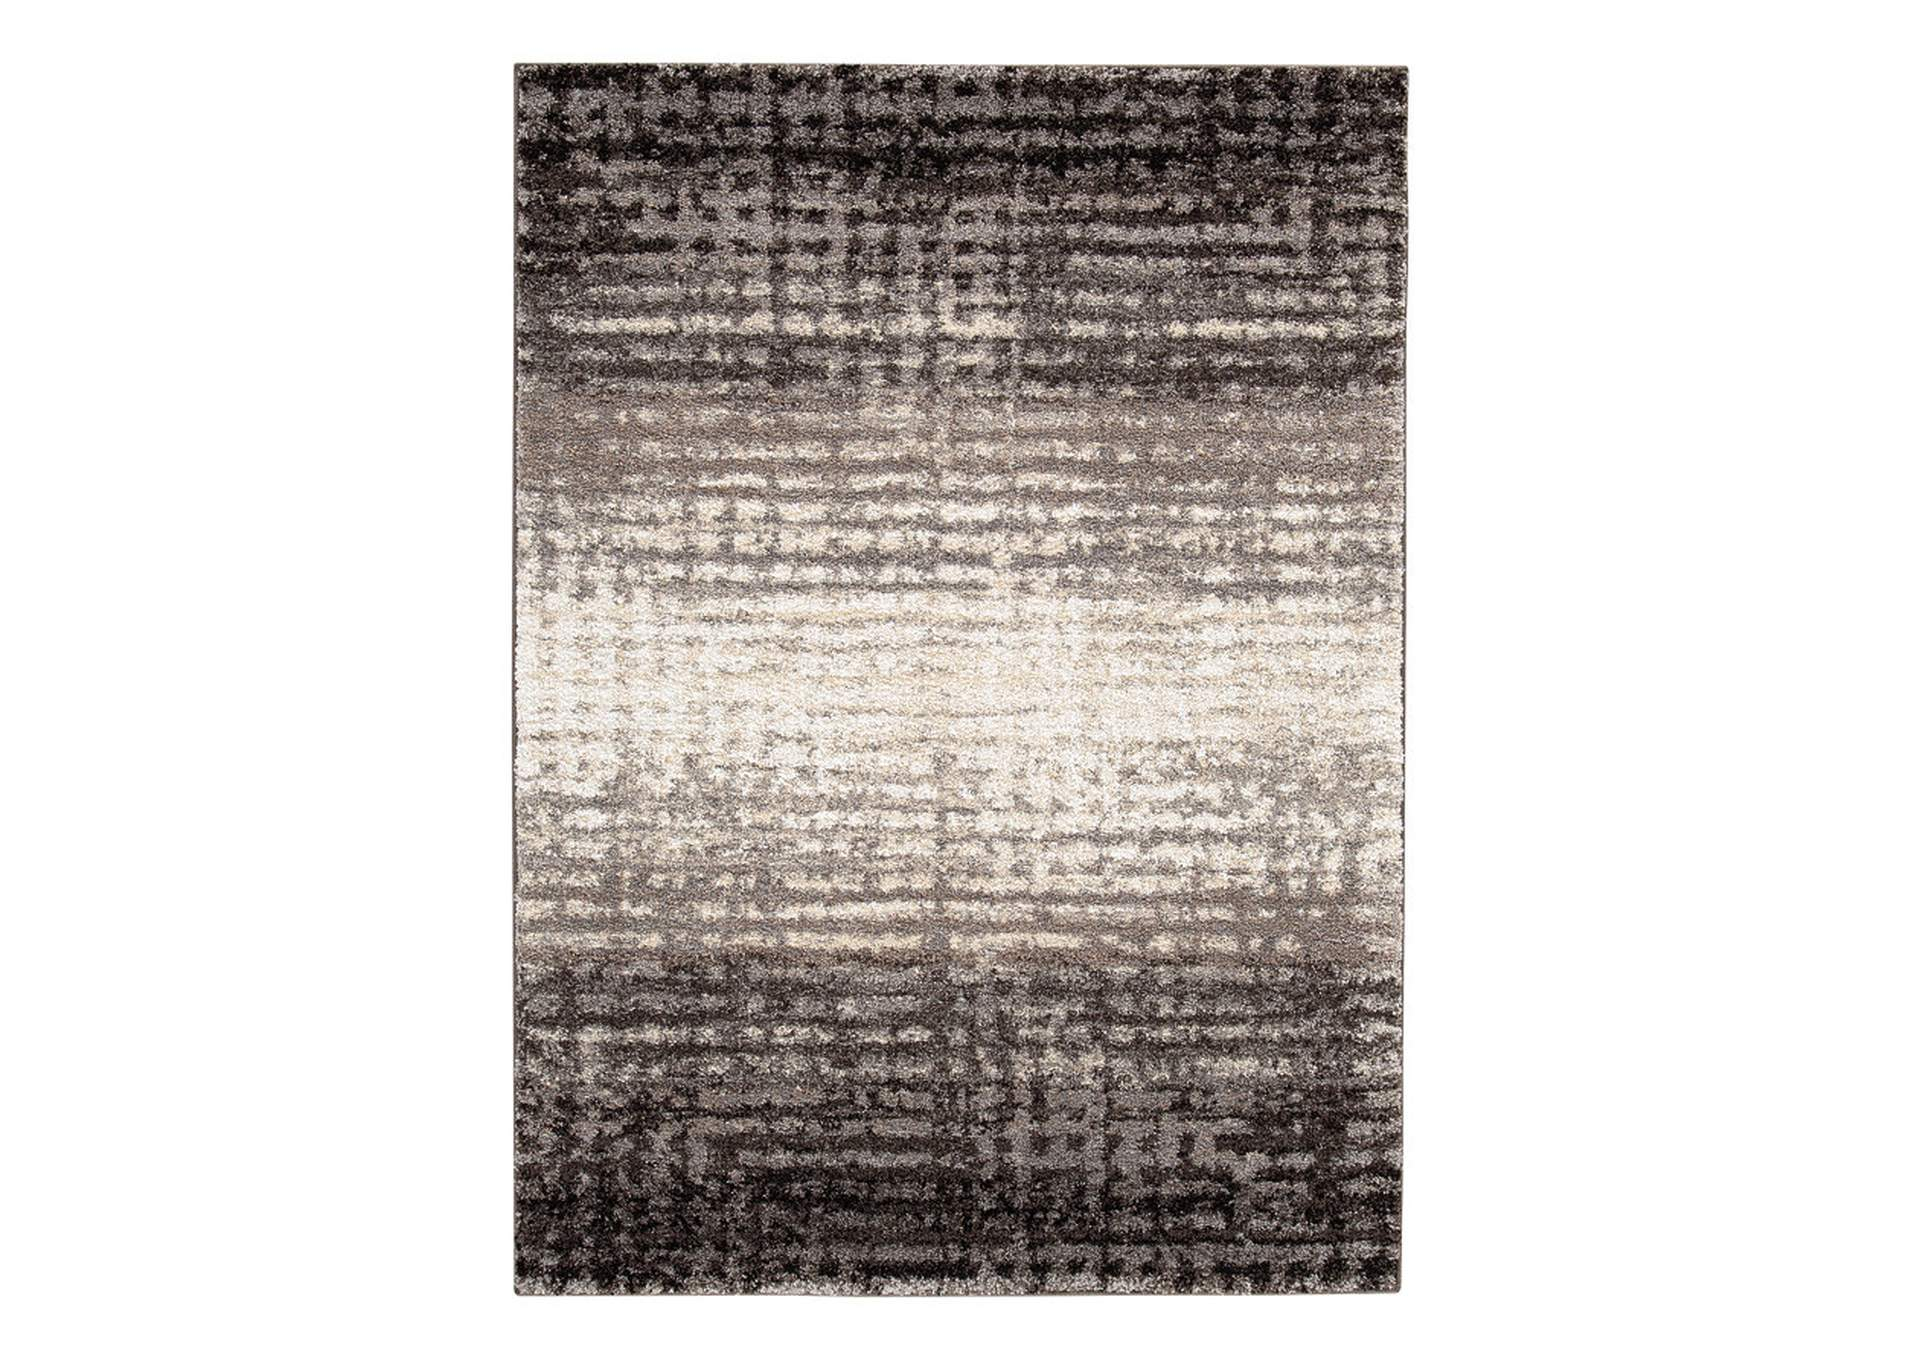 Marleisha Black Medium Rug,Signature Design By Ashley